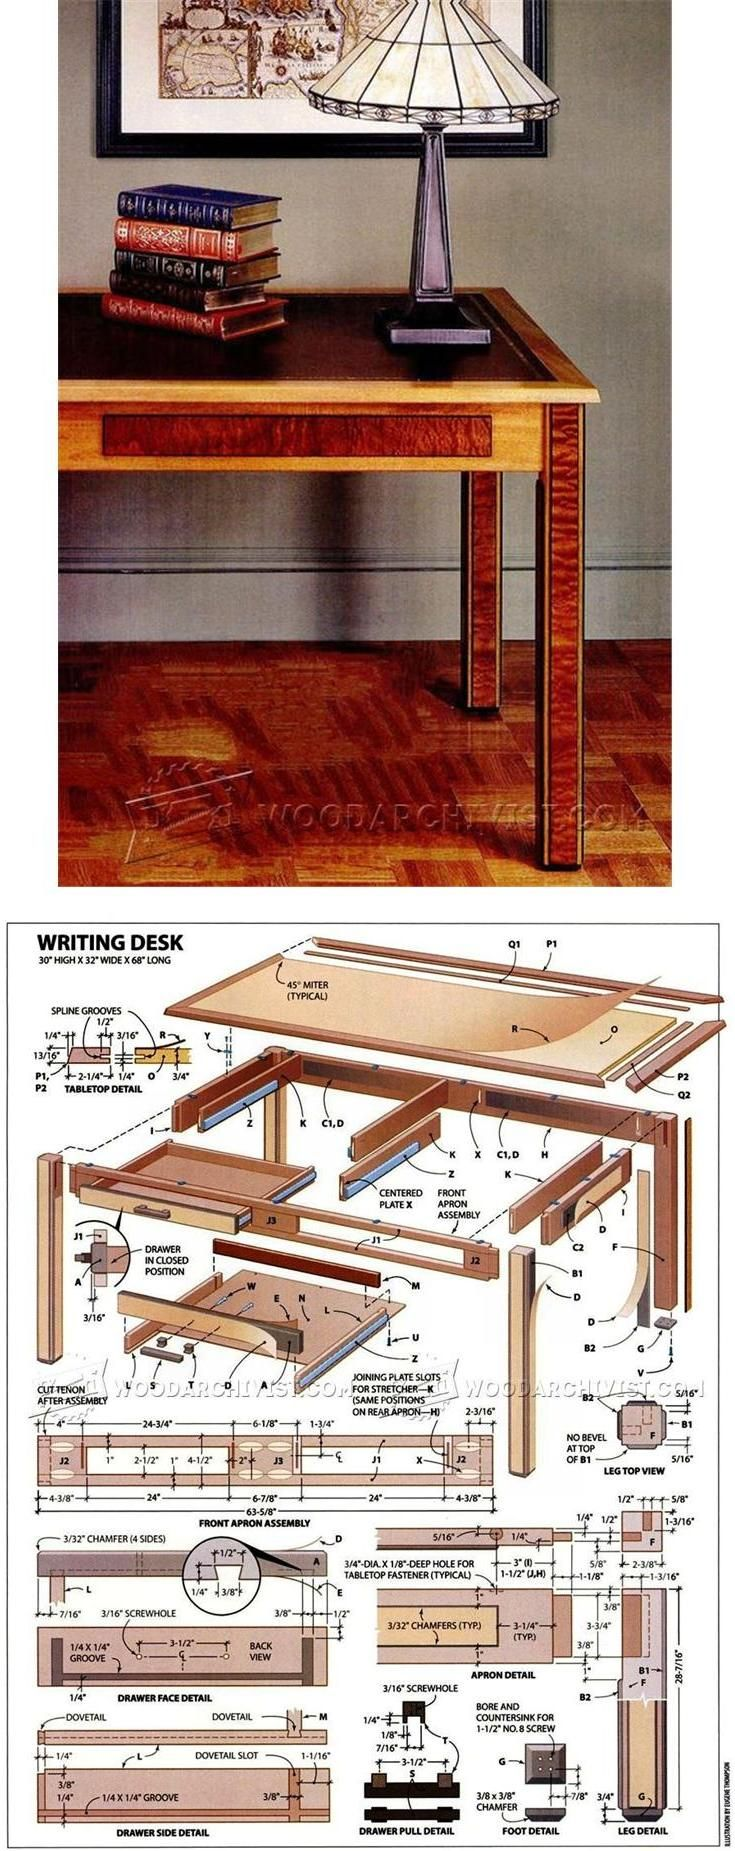 Elegant Writing Table Plans - Furniture Plans and Projects | WoodArchivist.com